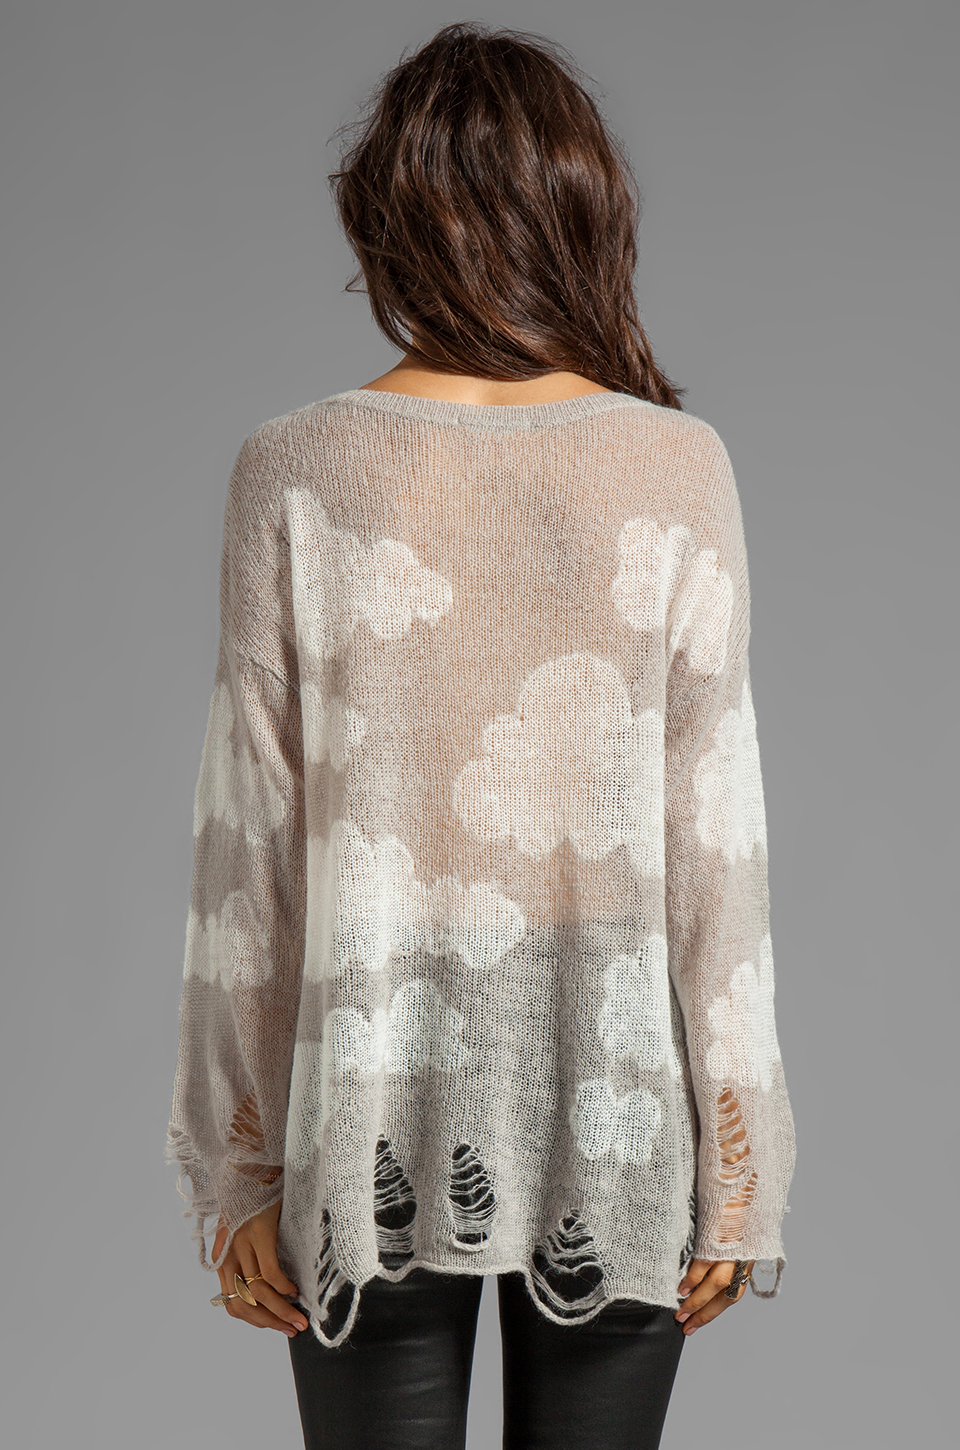 Wildfox Couture Cloudy Sky Lennon Sweater in Silver Polish